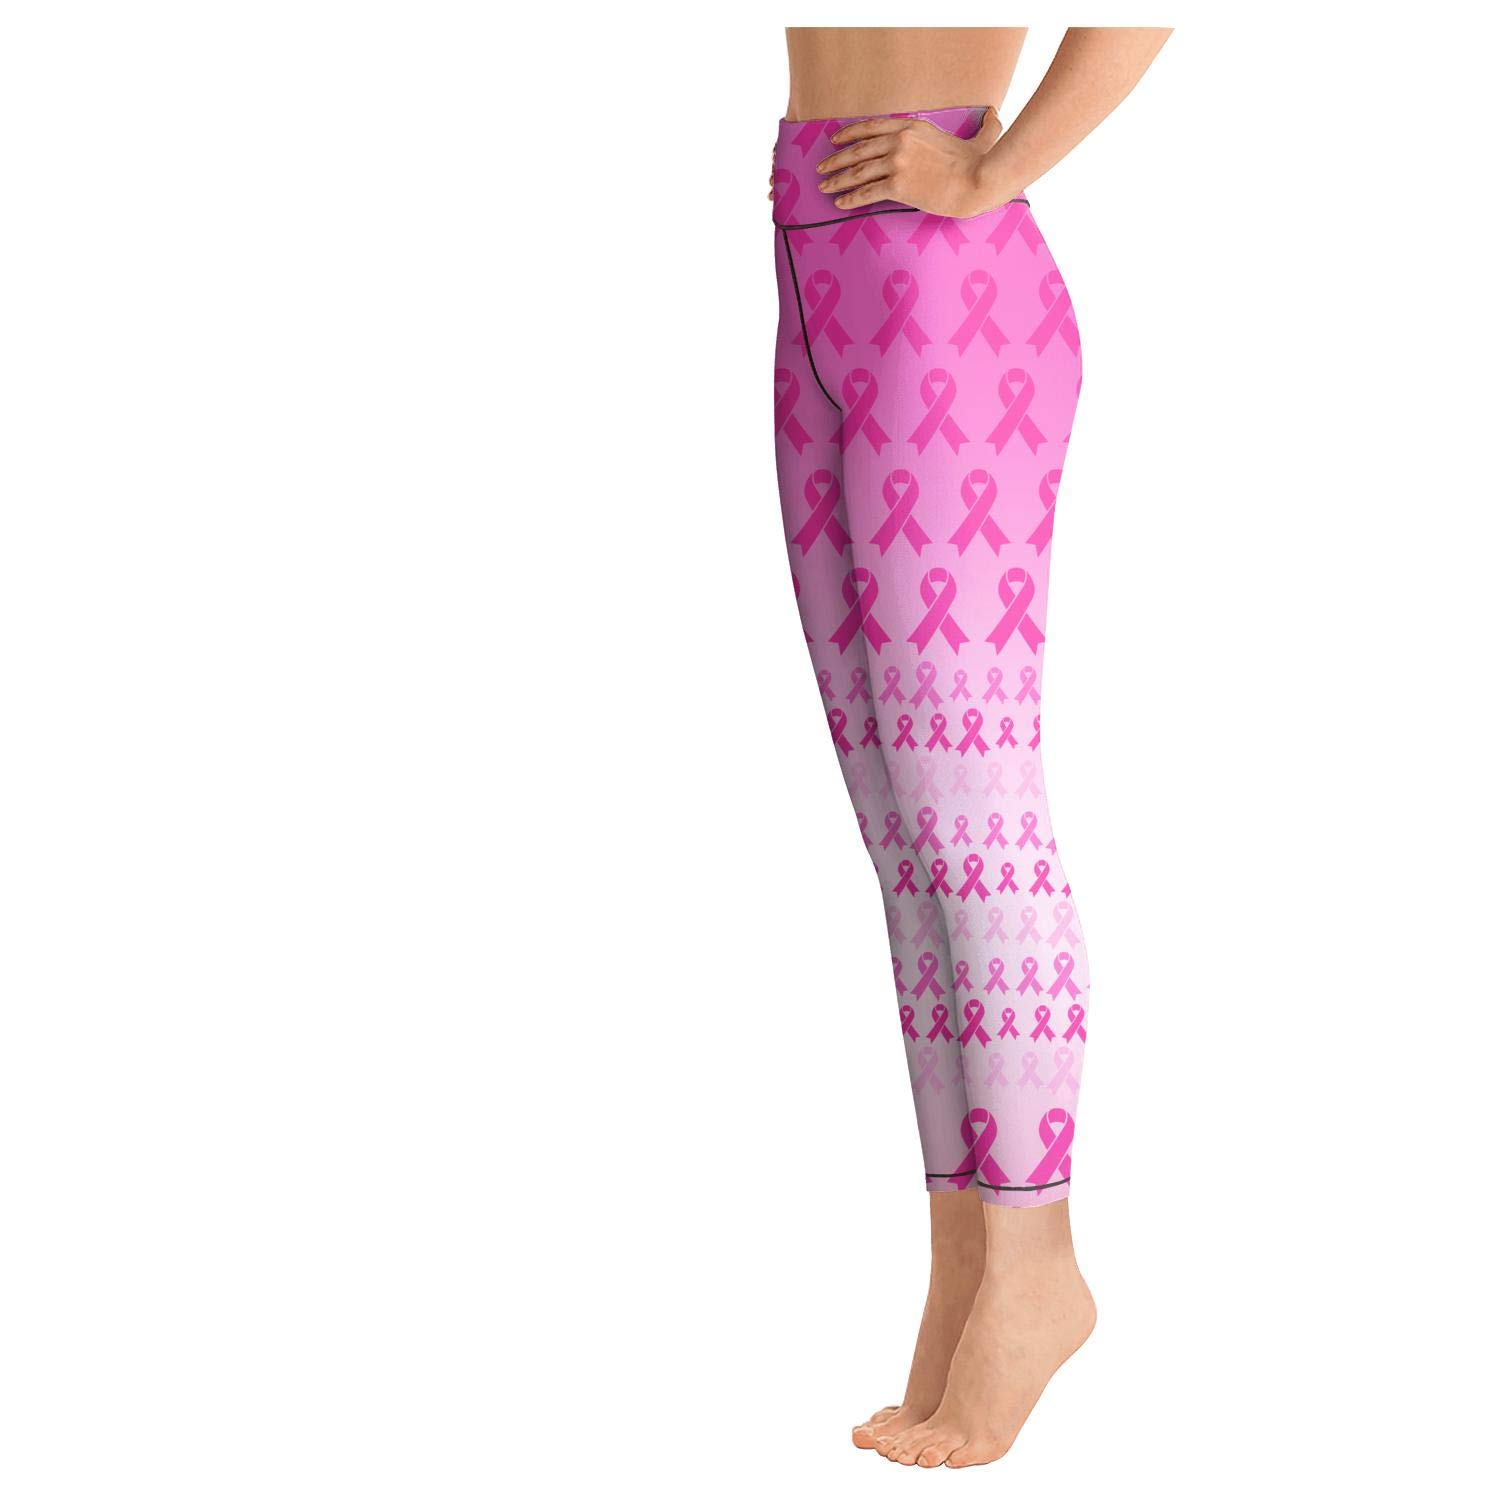 DEGYTY5H4 Pink Purple Breast Cancer Yoga Pants High Waisted Cool Legging for Womens Plus Size